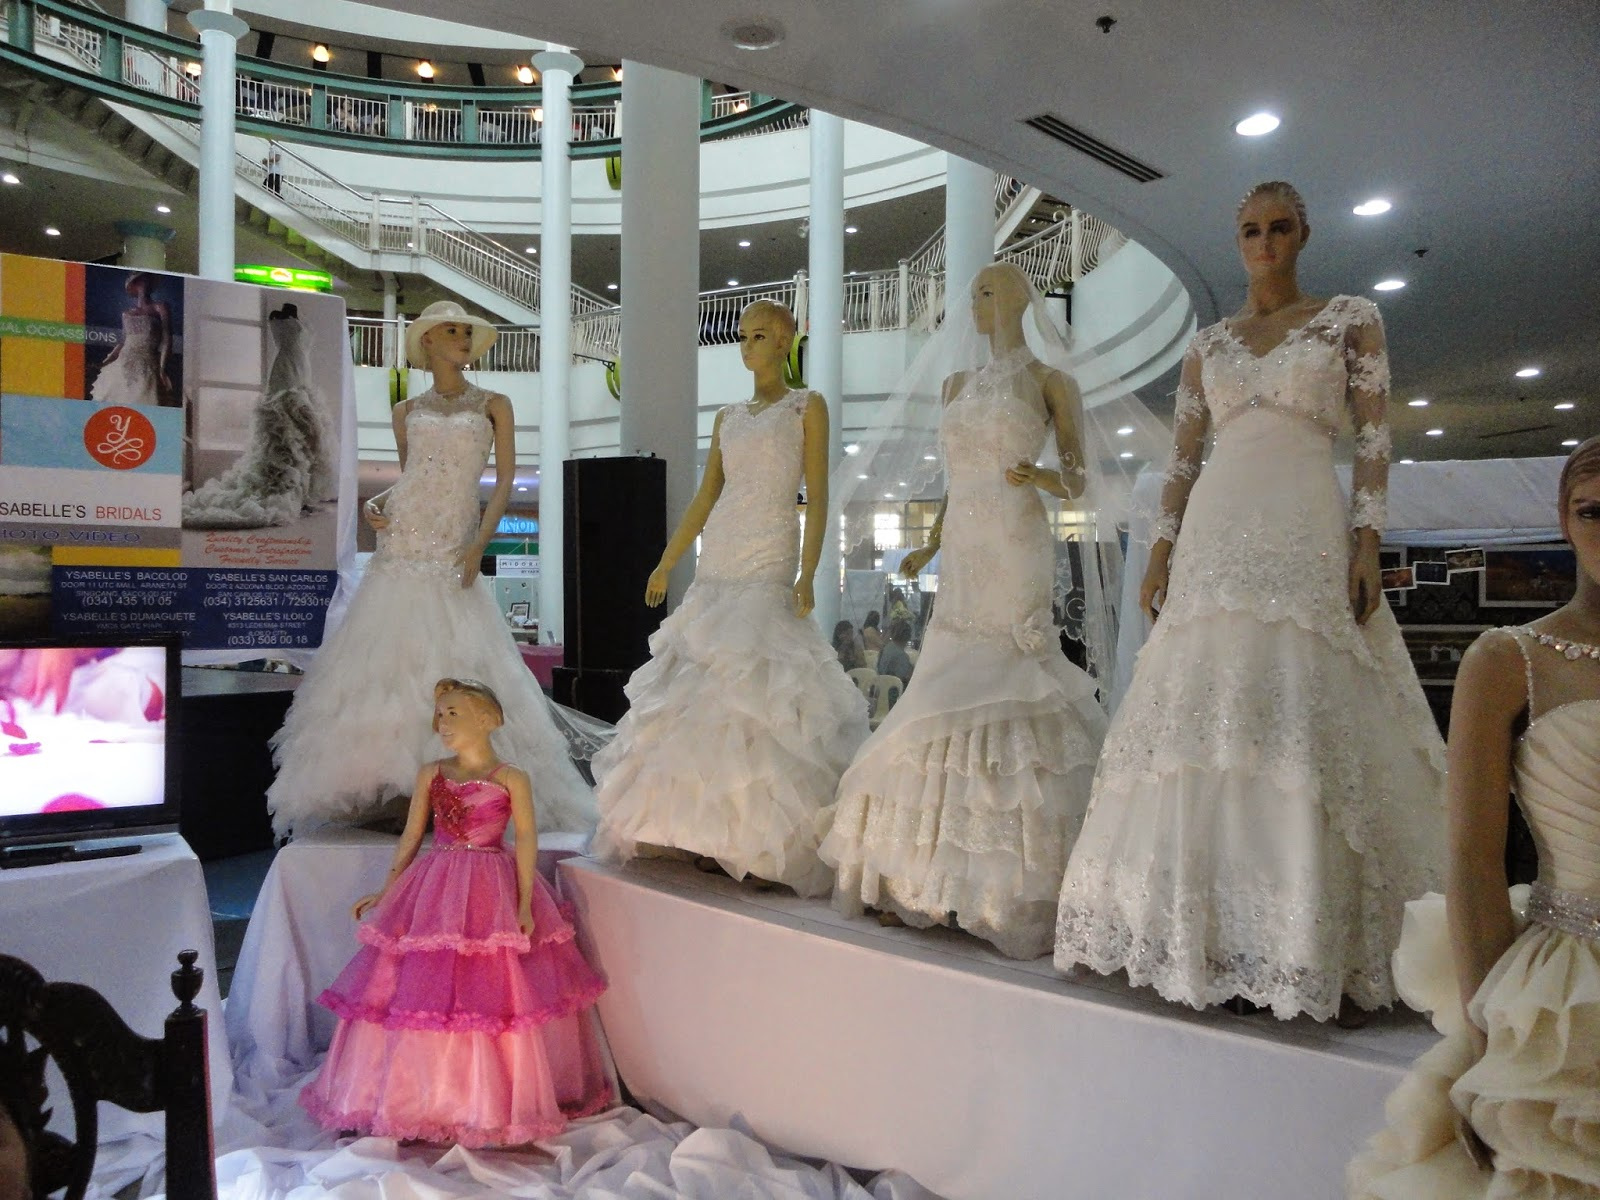 A Display Of Bridal Gowns And Groom Suits By Ysabelles S During The Kasalan 2017 Wedding Exhibition At Fountain Area Robinson Place